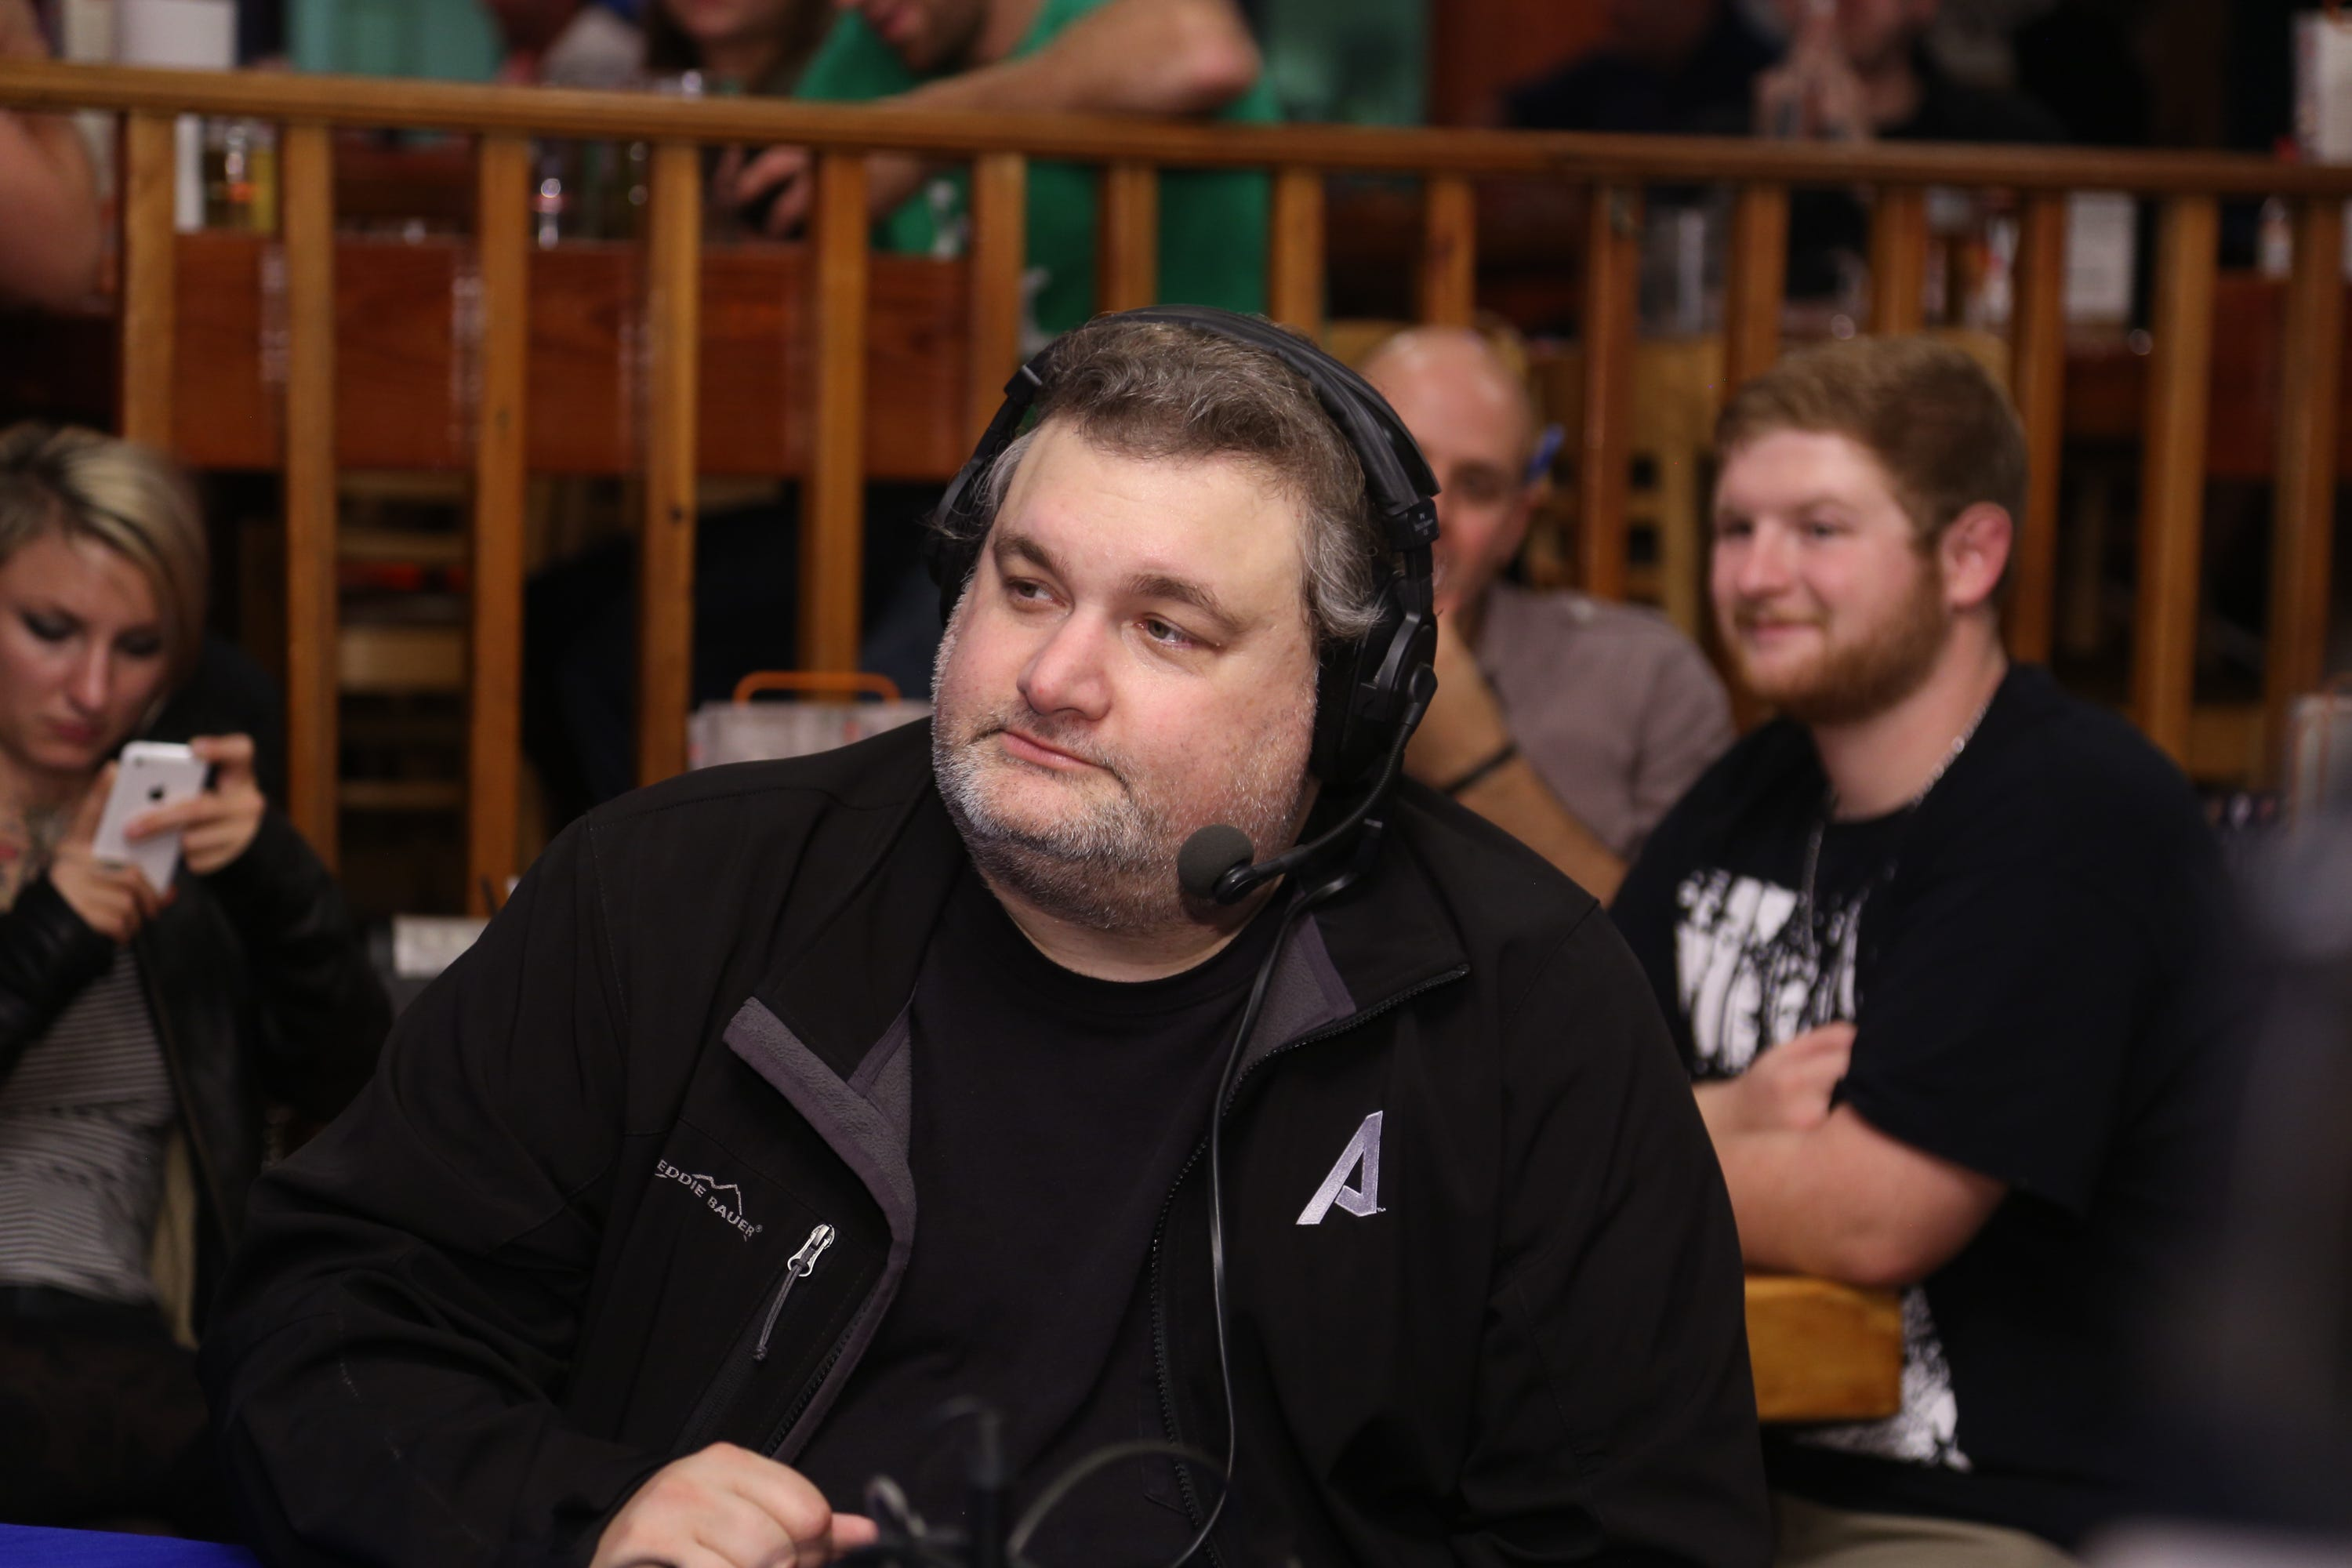 Comedian Artie Lange says his dead father sent him a secret word of support in rehab